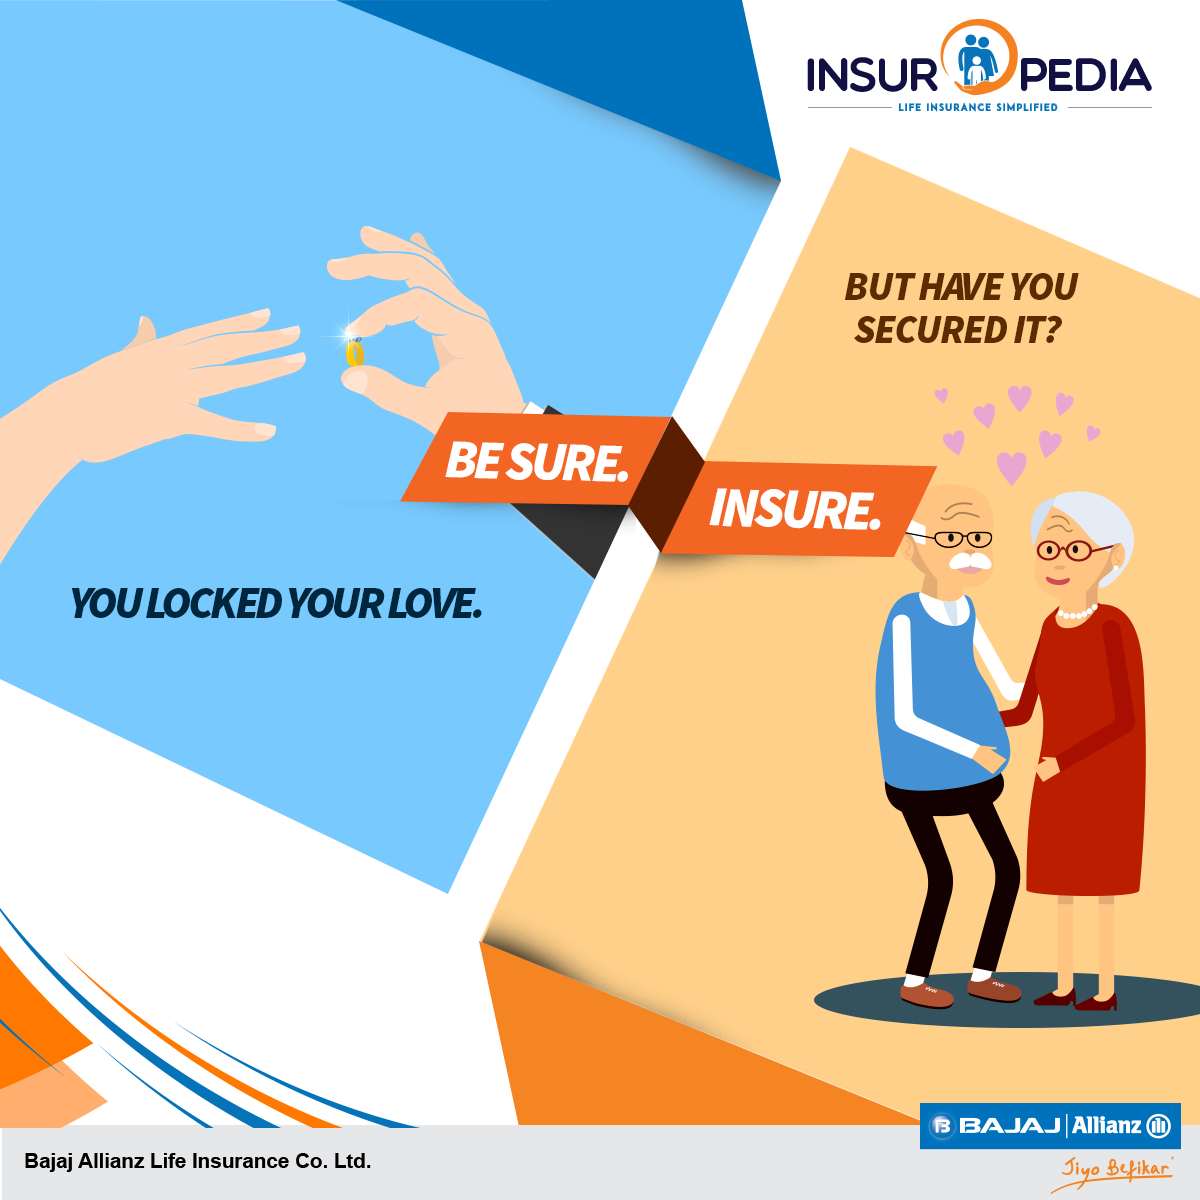 Some Love Stories Are Secured Forever Be Sure Insure